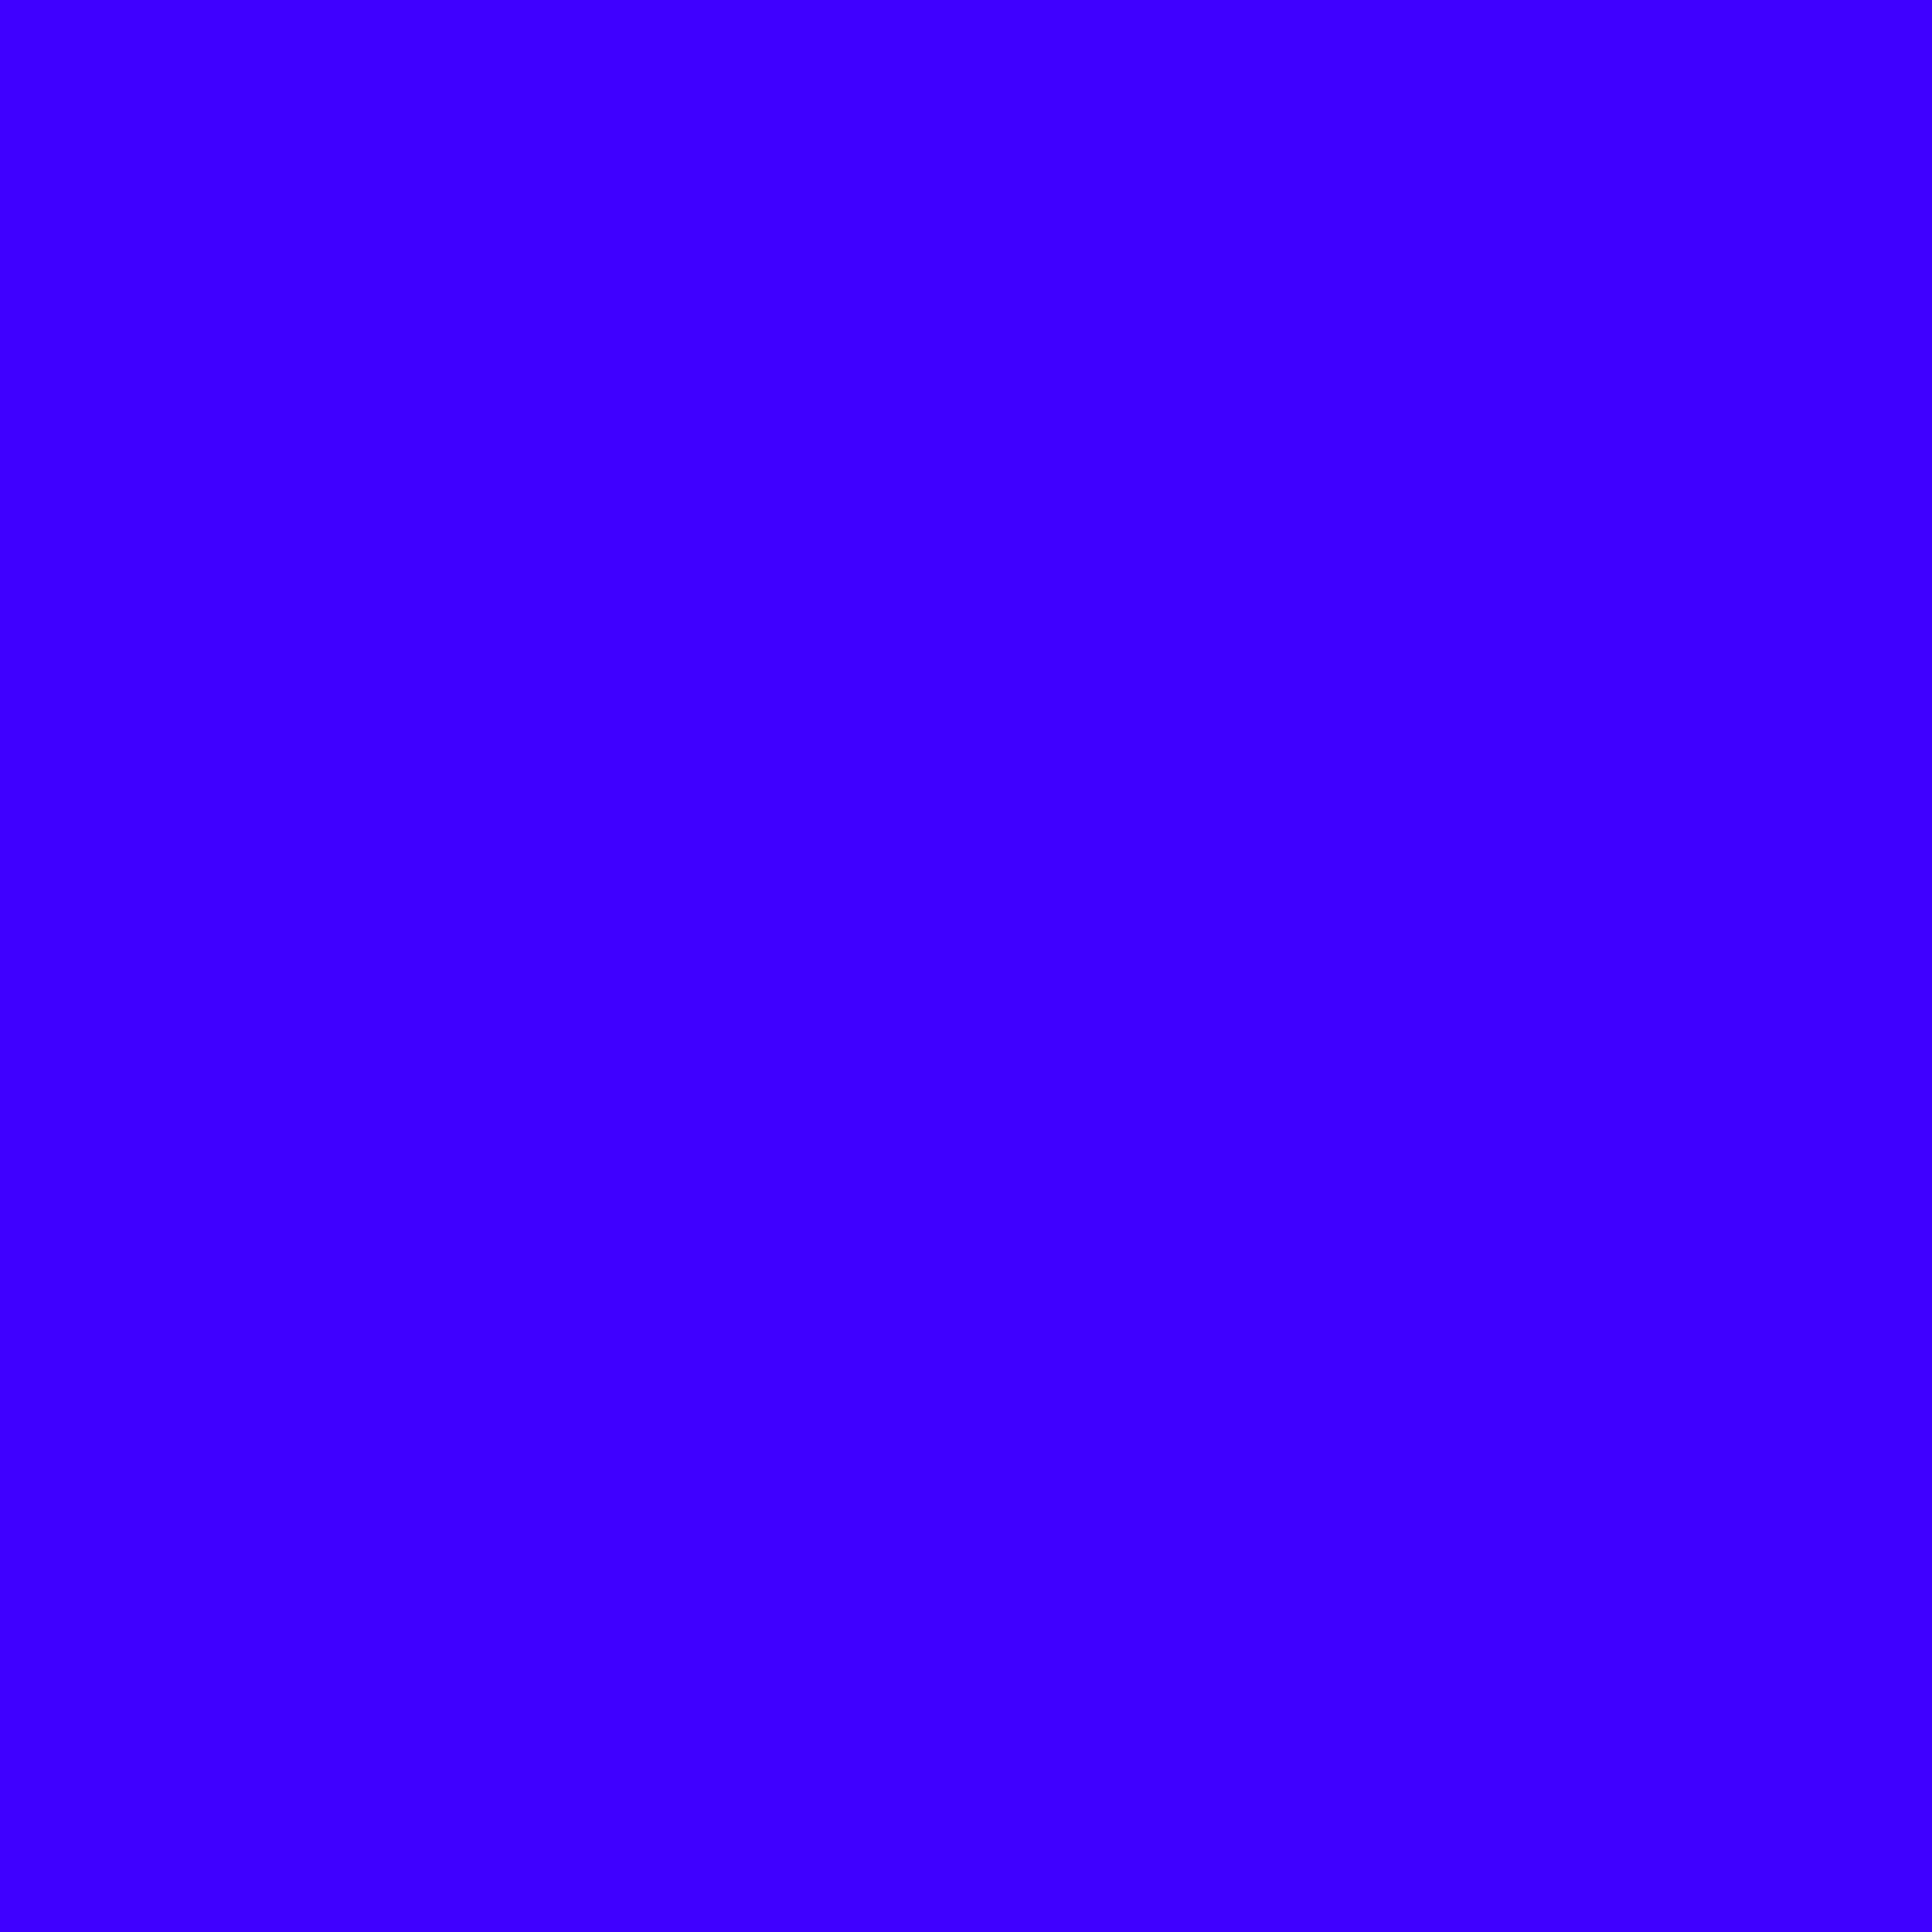 2048x2048 Electric Ultramarine Solid Color Background 2048x2048